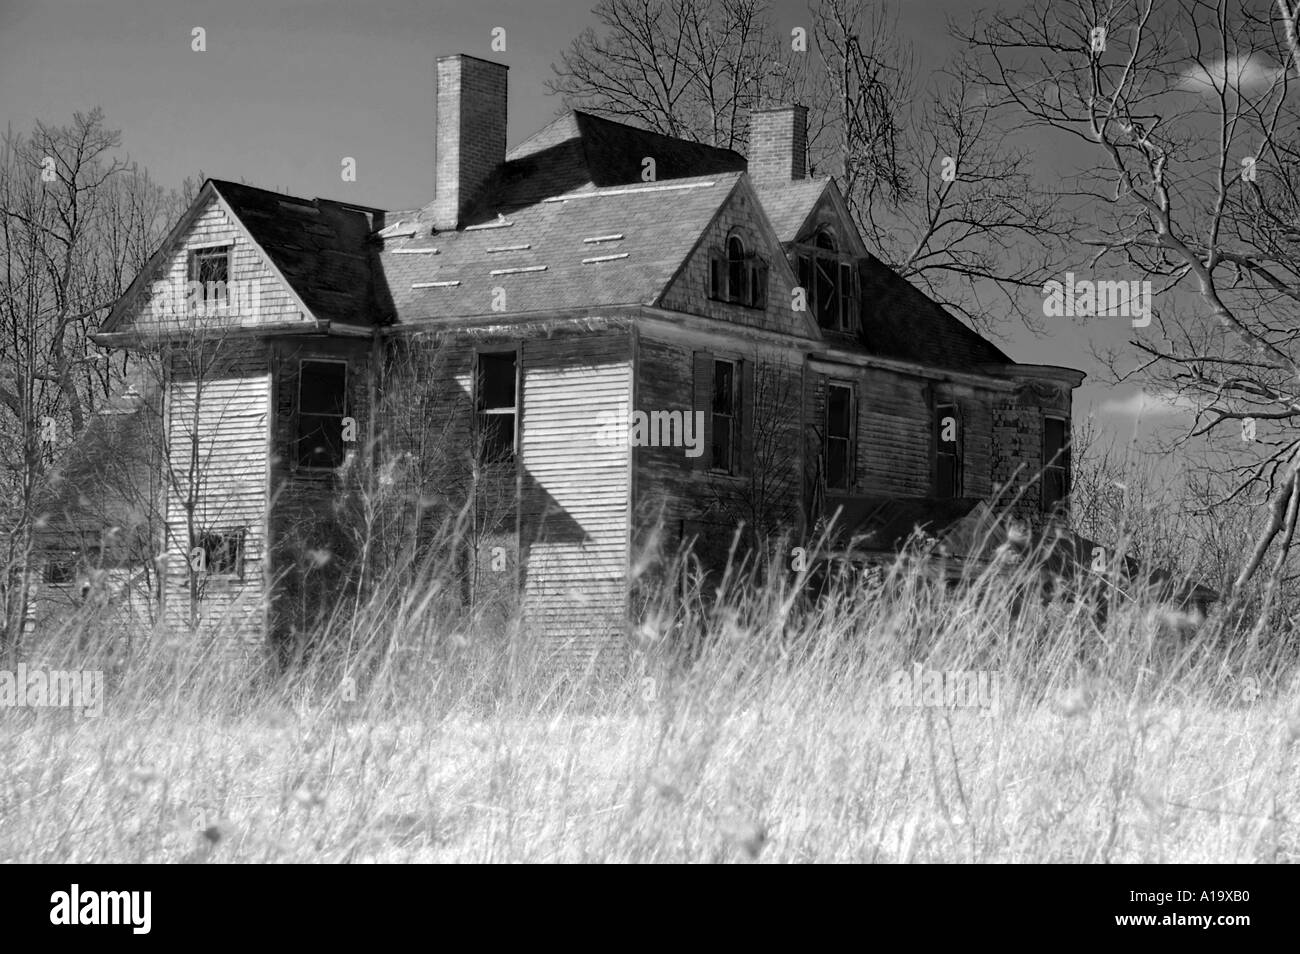 eerie abandoned country house with broken windows surrounded by